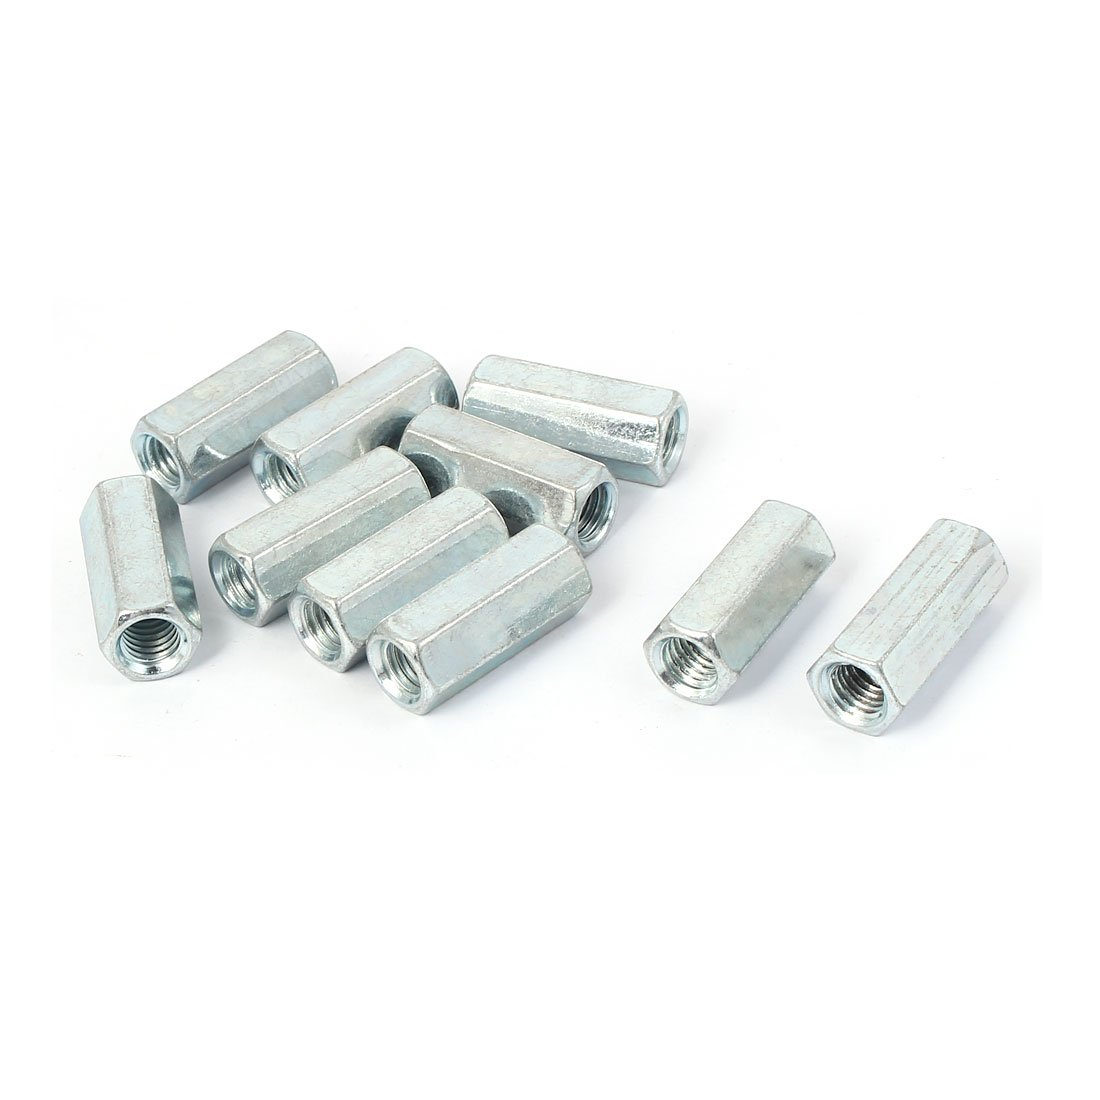 Uxcell a16041400ux0820 M8 Female Thread Straight Fitting Hex Rod Coupling Nuts Silver Tone 10 Pcs (Pack of 10)